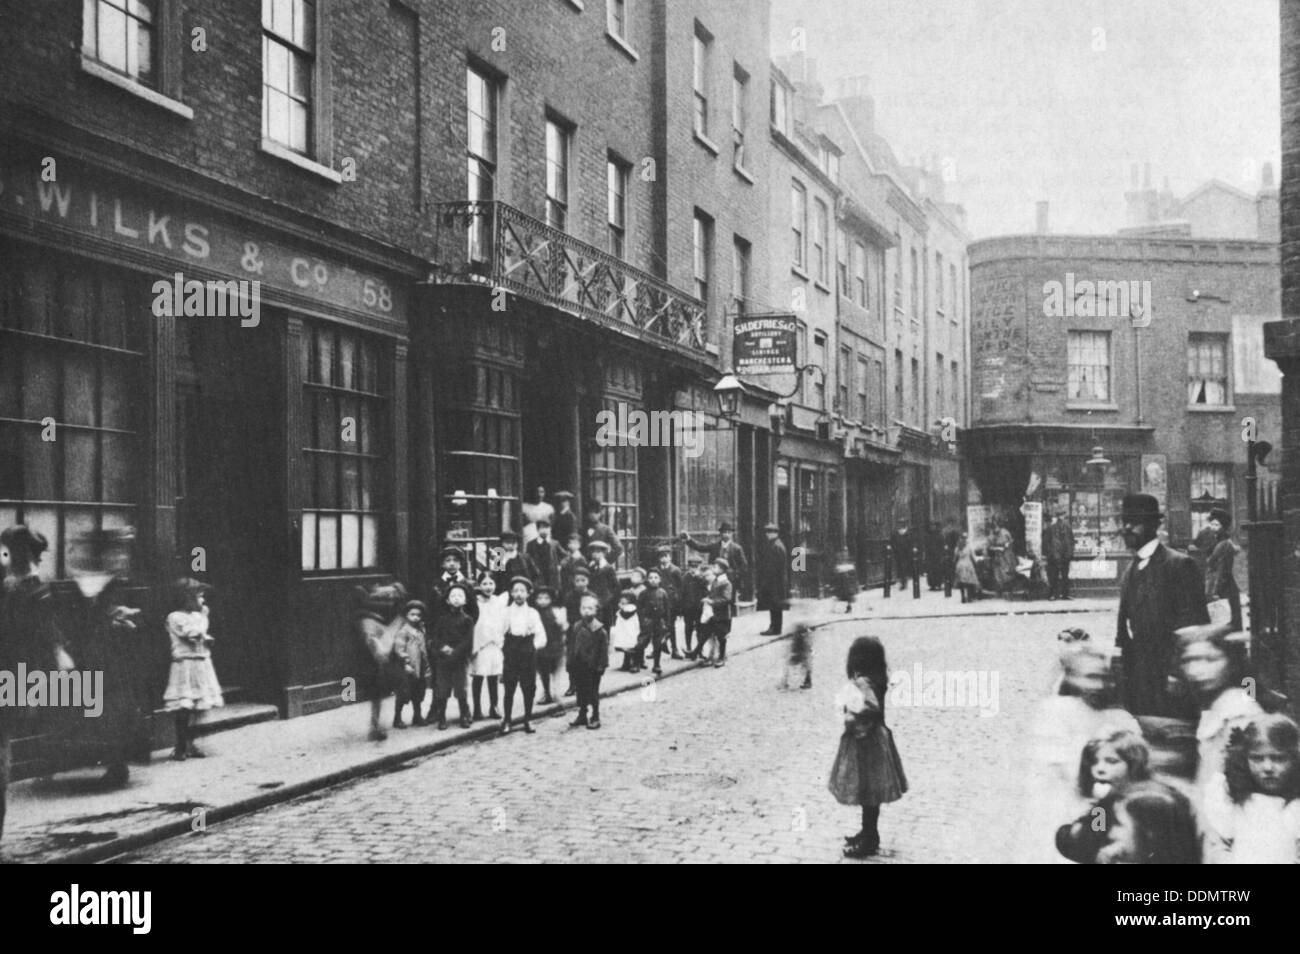 Georgian shops in Artillery Lane, East End, London, 1912. - Stock Image